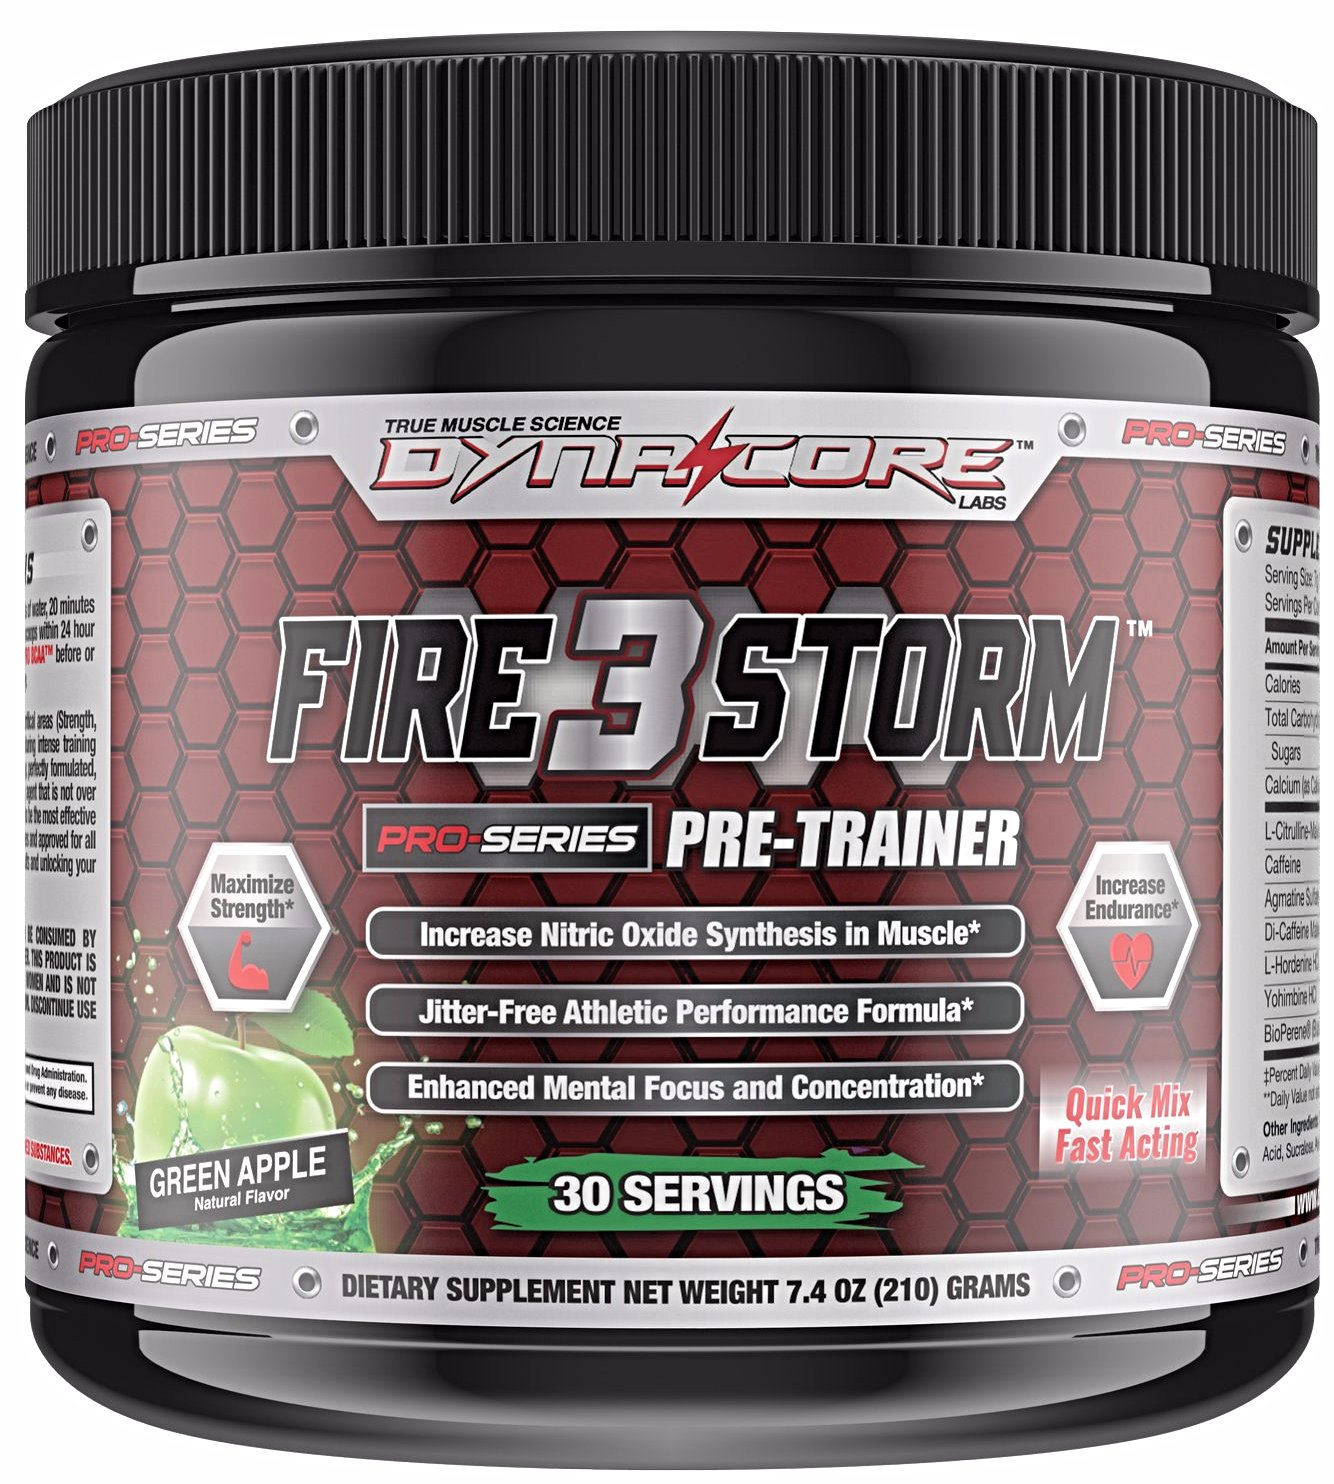 Firestorm 3 V2 Pre-Trainer w/Scoopie - Dyna-Core labs